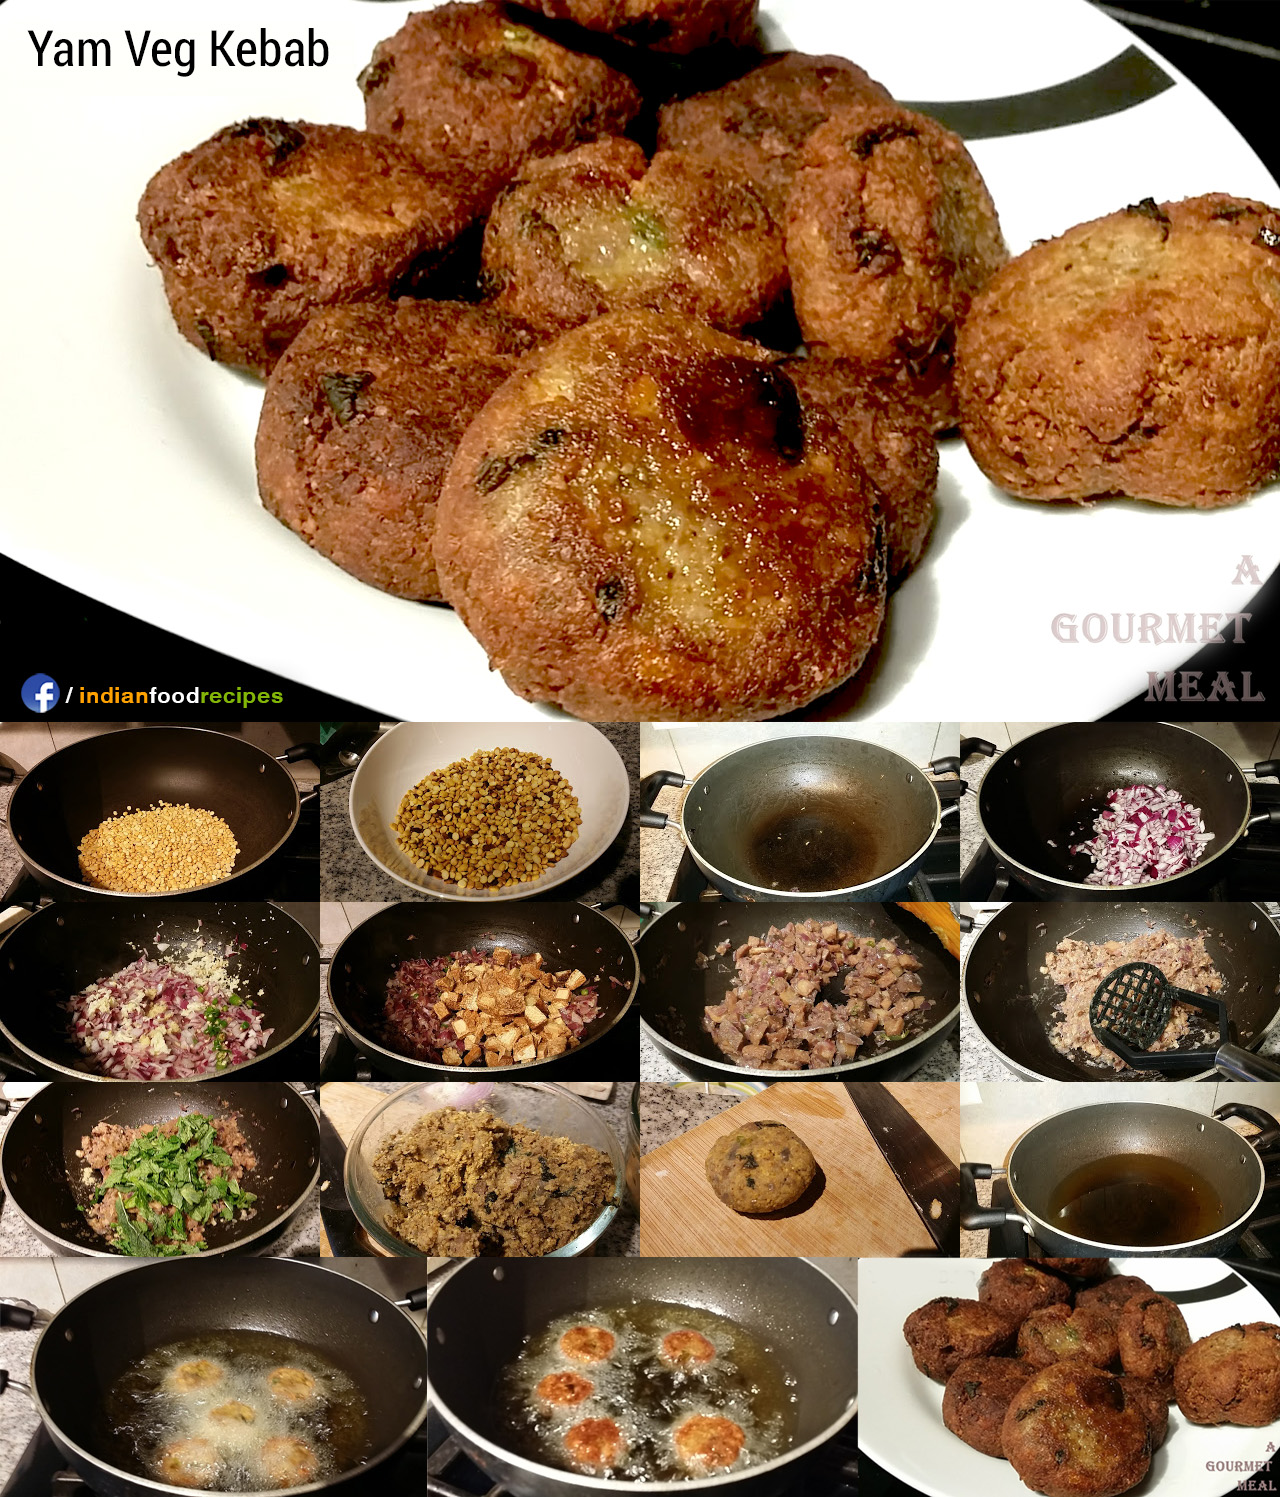 Yam Veg Kebab recipe step by step